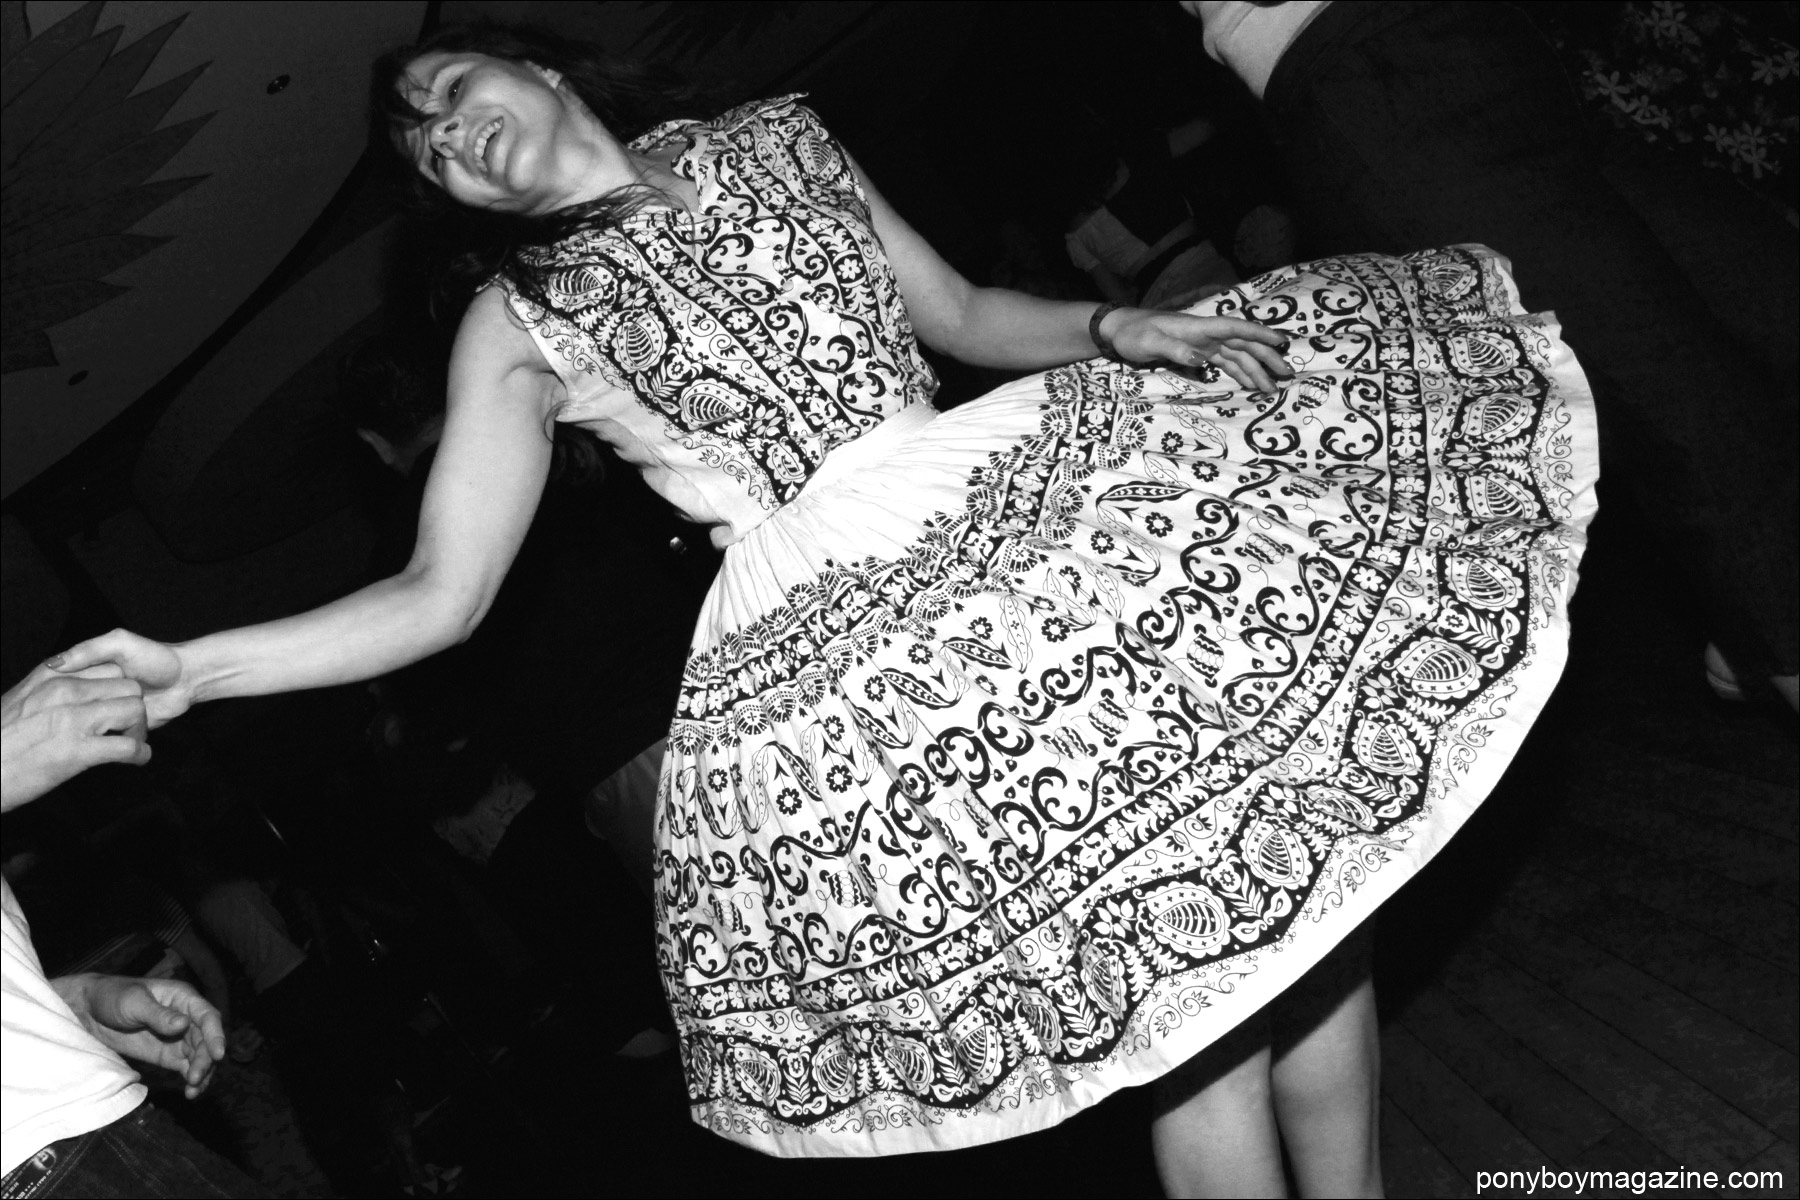 A young rockabilly dancer in a full skirt photographed by Alexander Thompson for Ponyboy Magazine at Tom Ingram's Viva Las Vegas 17 weekender.